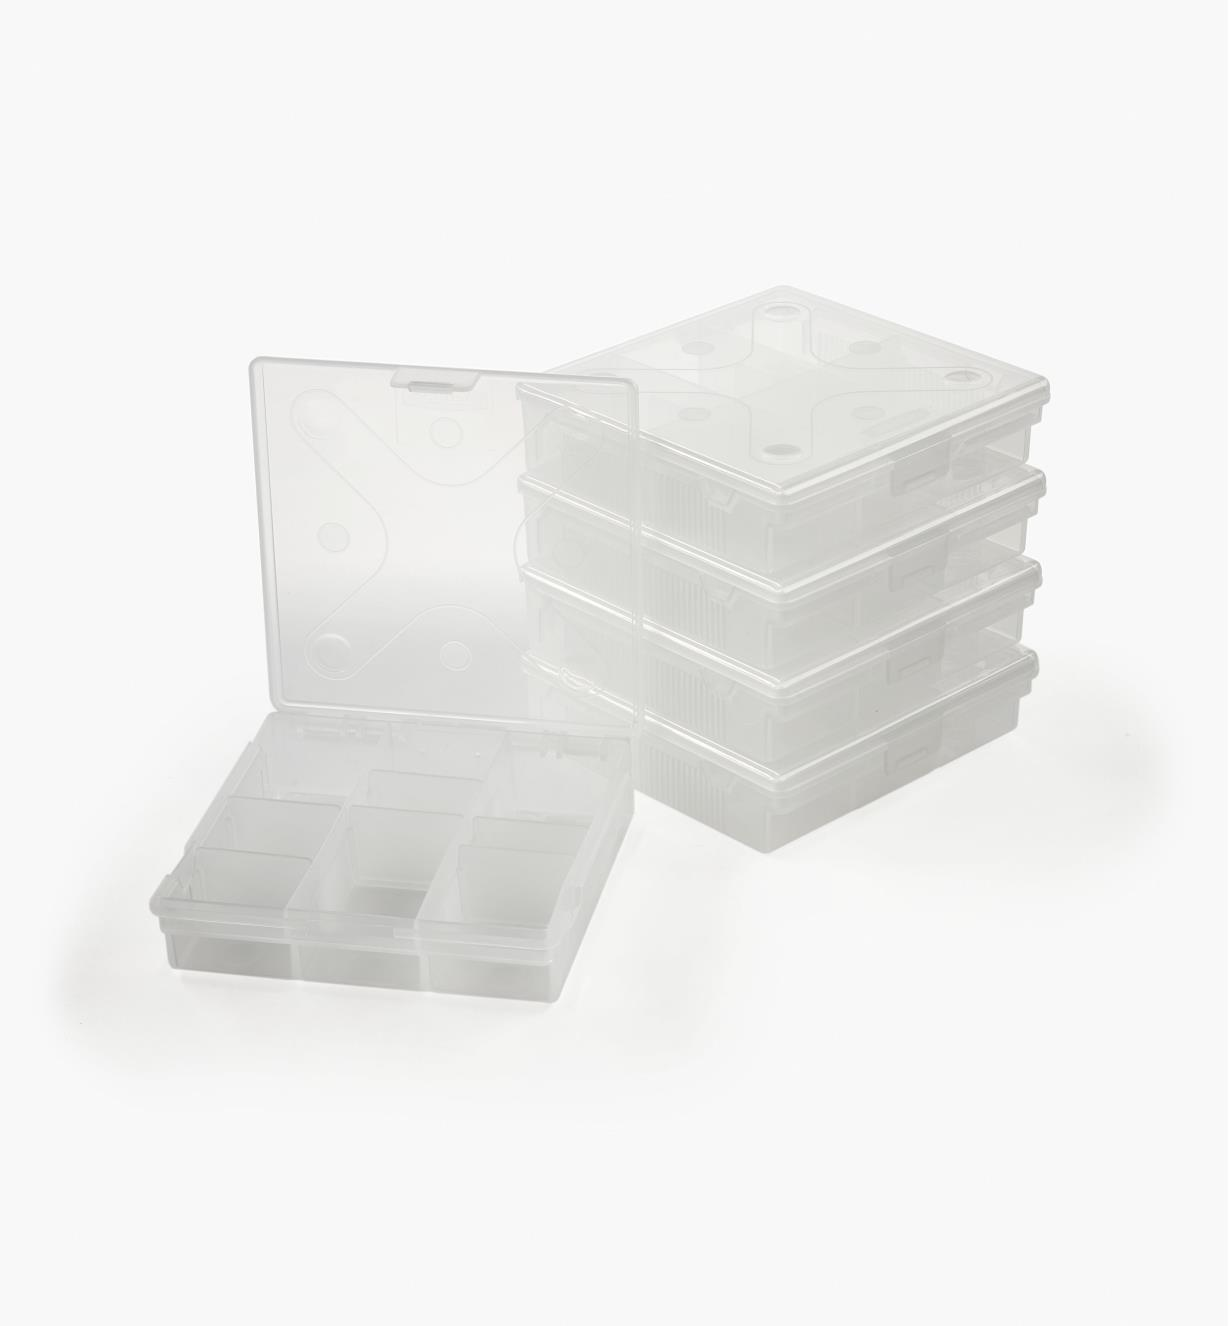 99W0281 - Square Divider Boxes, set of 5